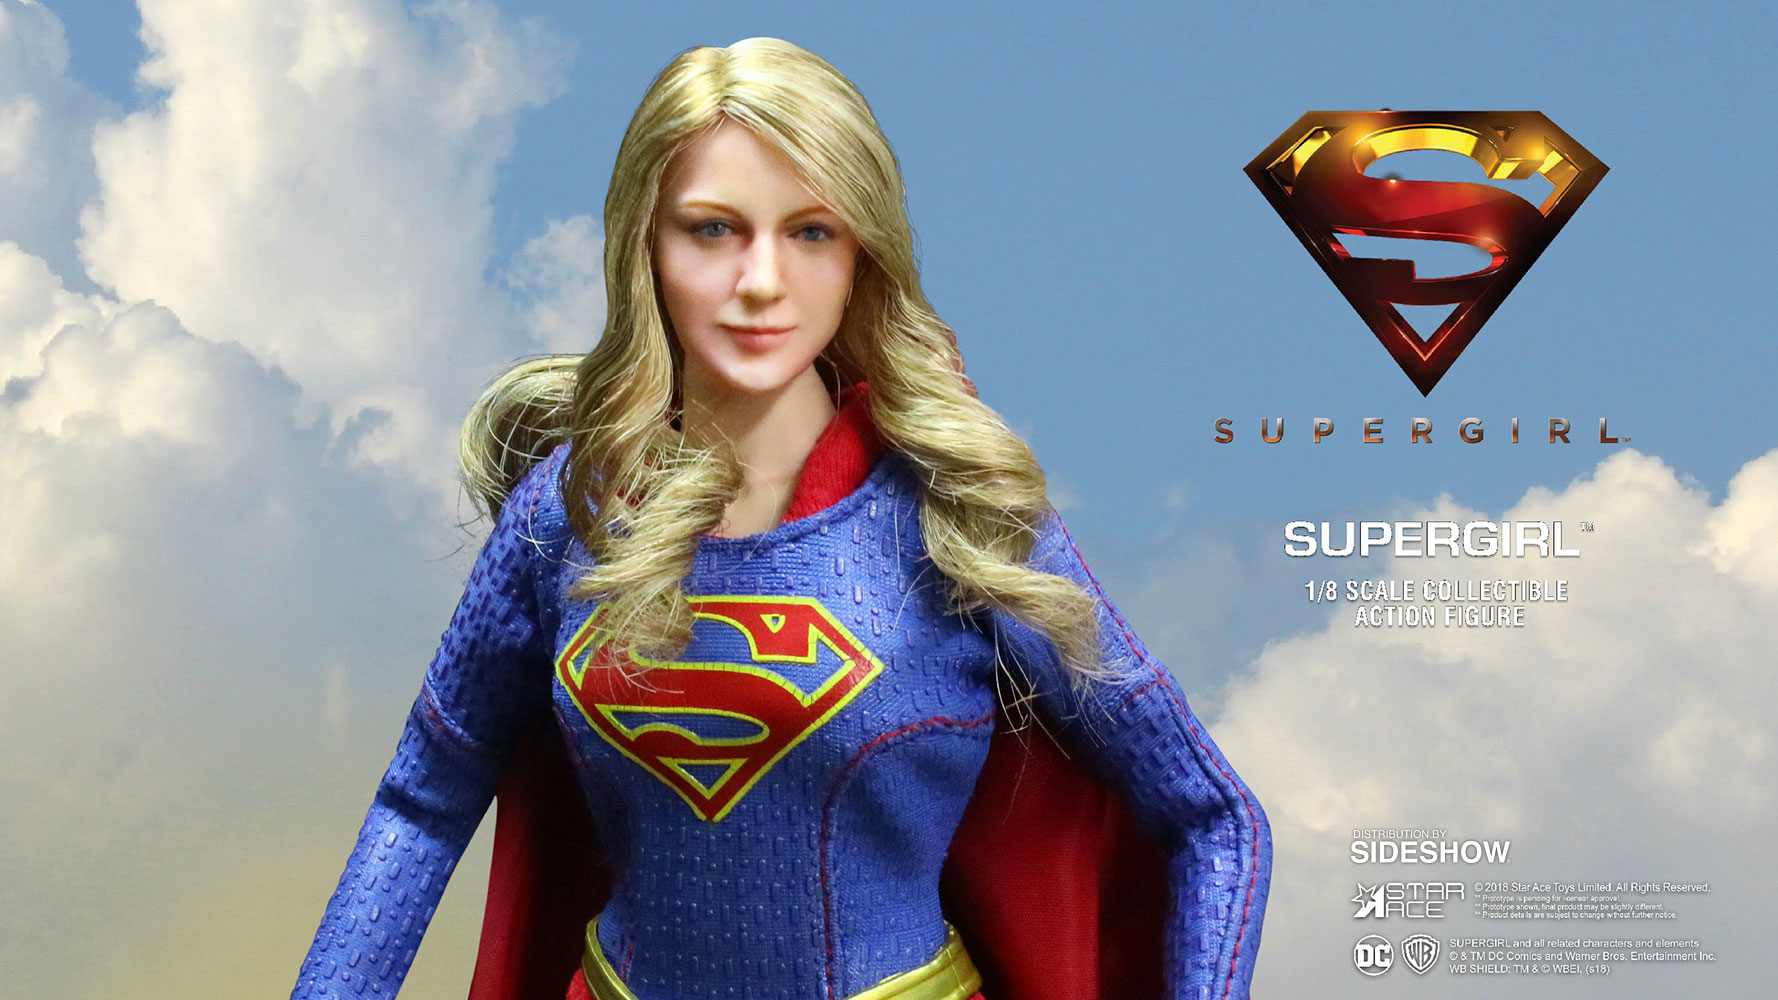 Supergirl (TV Series Inspired)